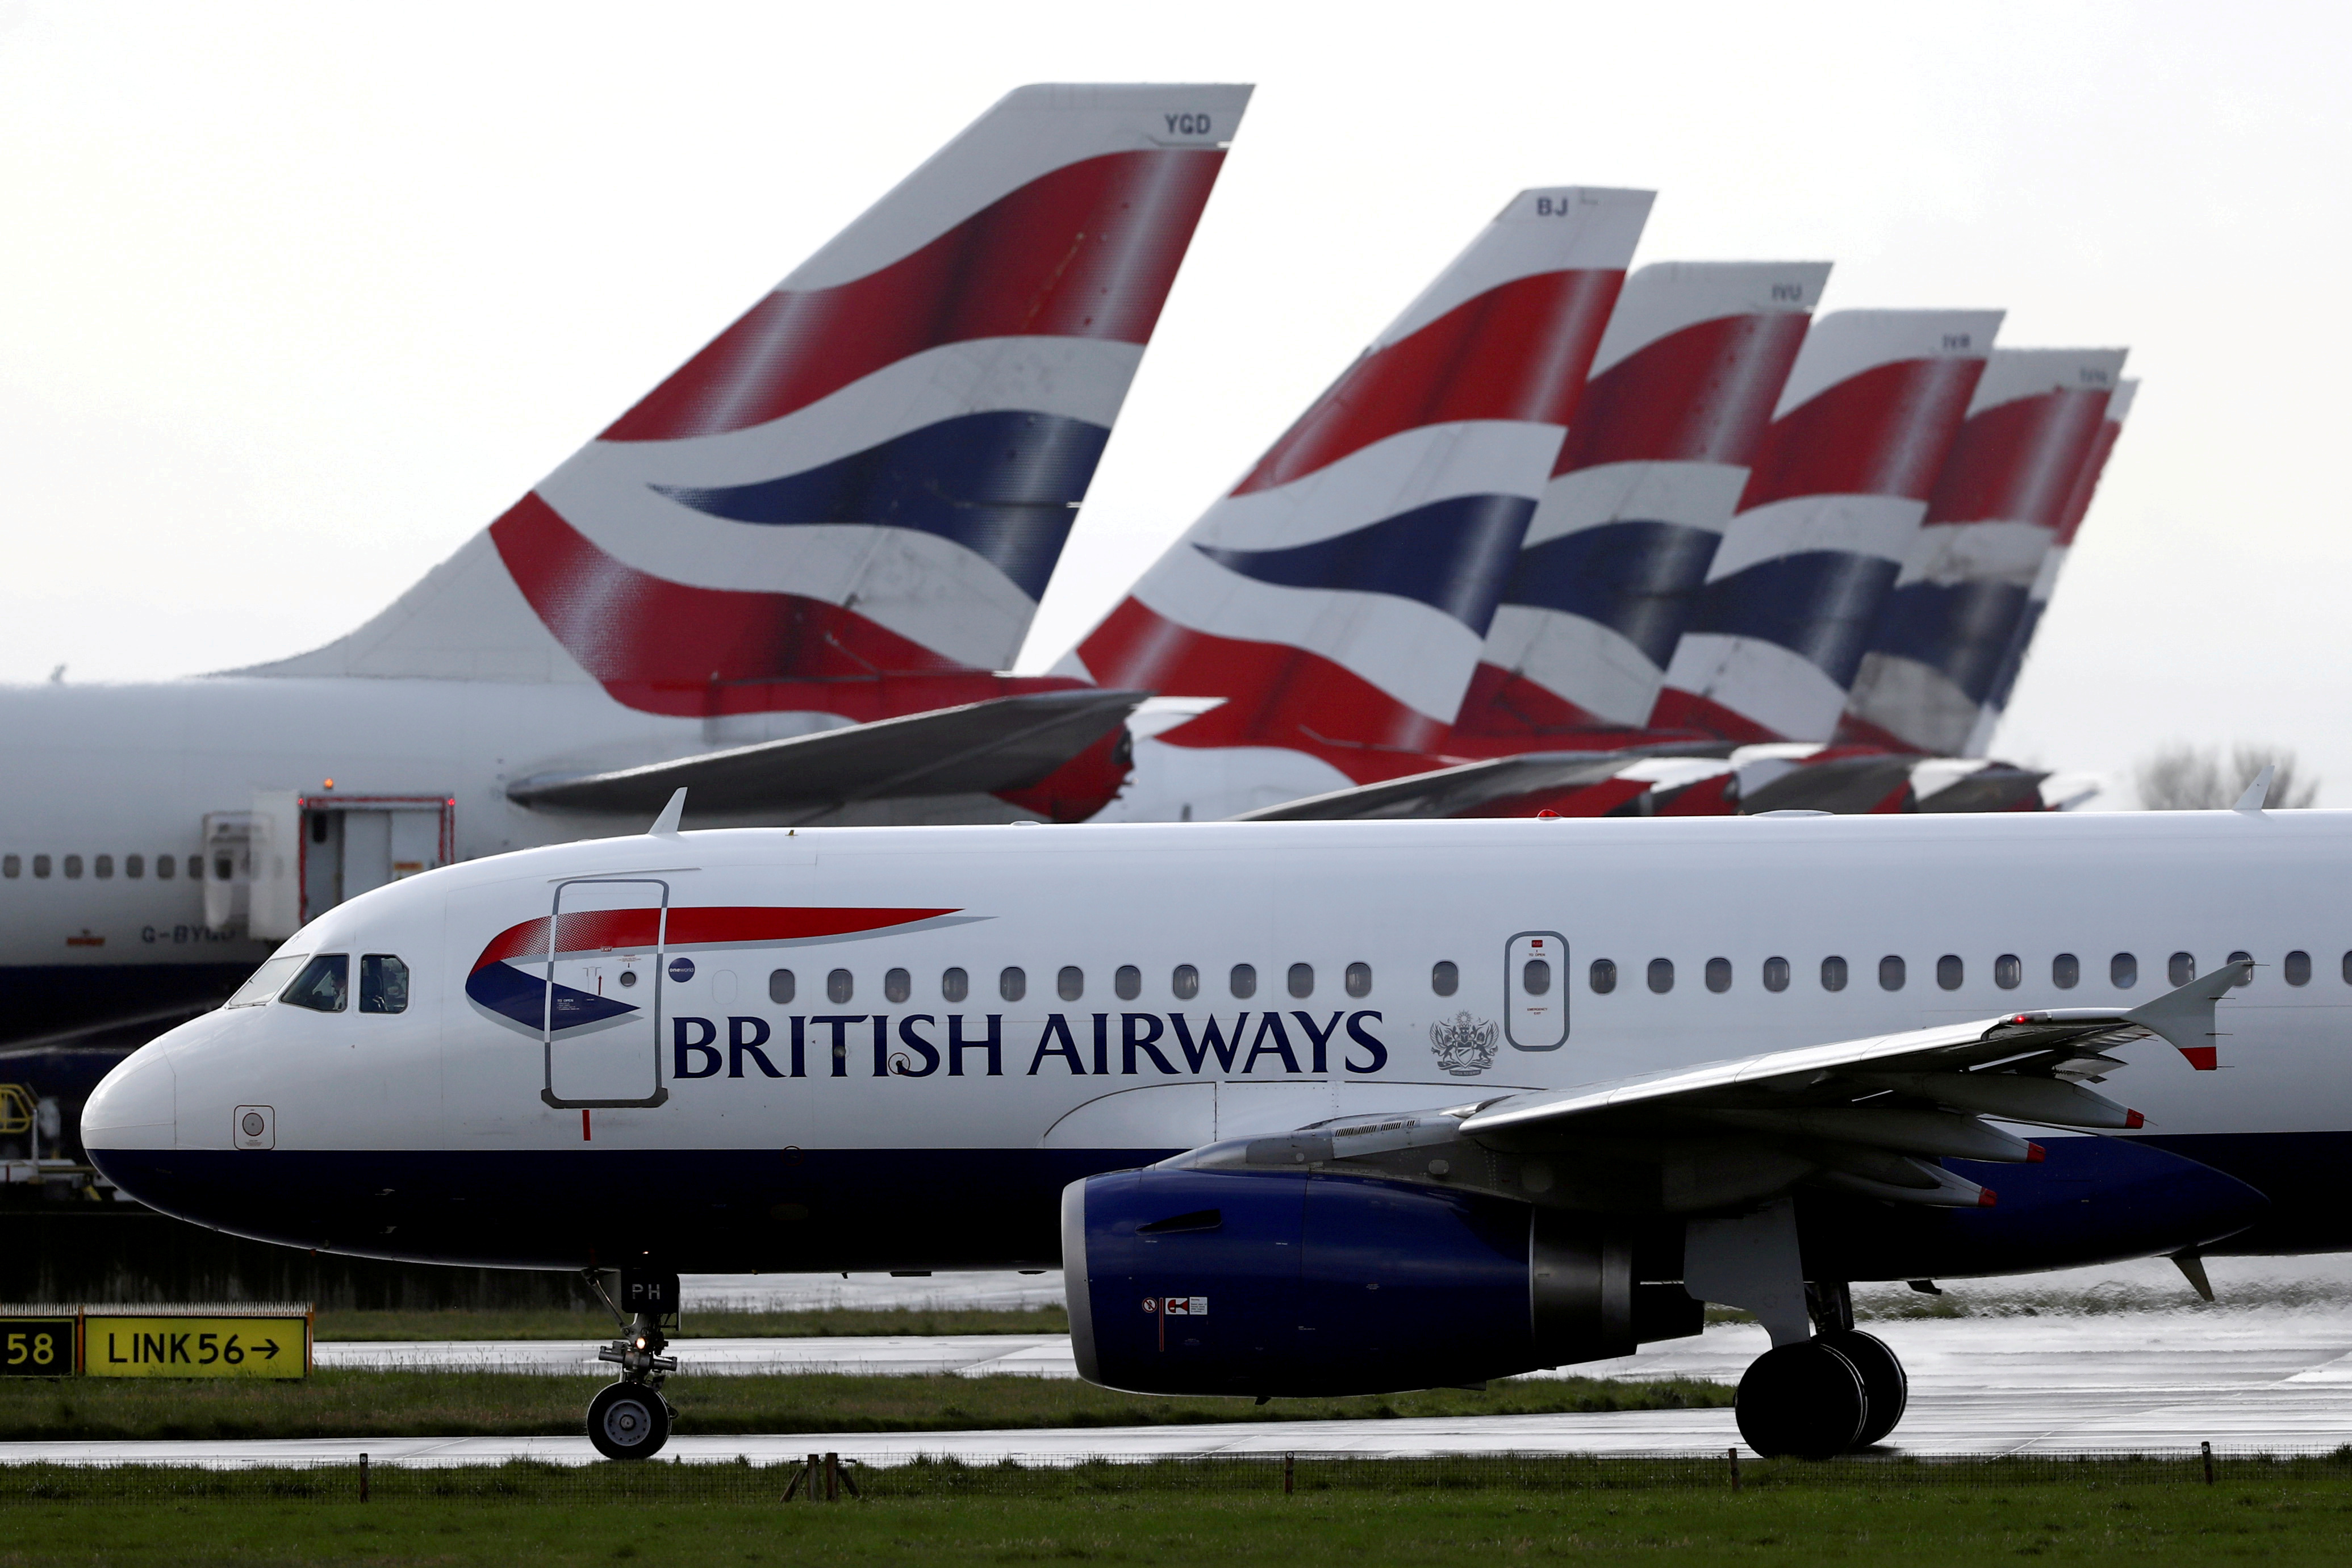 A British Airways plane taxis past tail fins of parked aircraft near Terminal 5 at Heathrow Airport in London, Britain, March 14, 2020. REUTERS/Simon Dawson